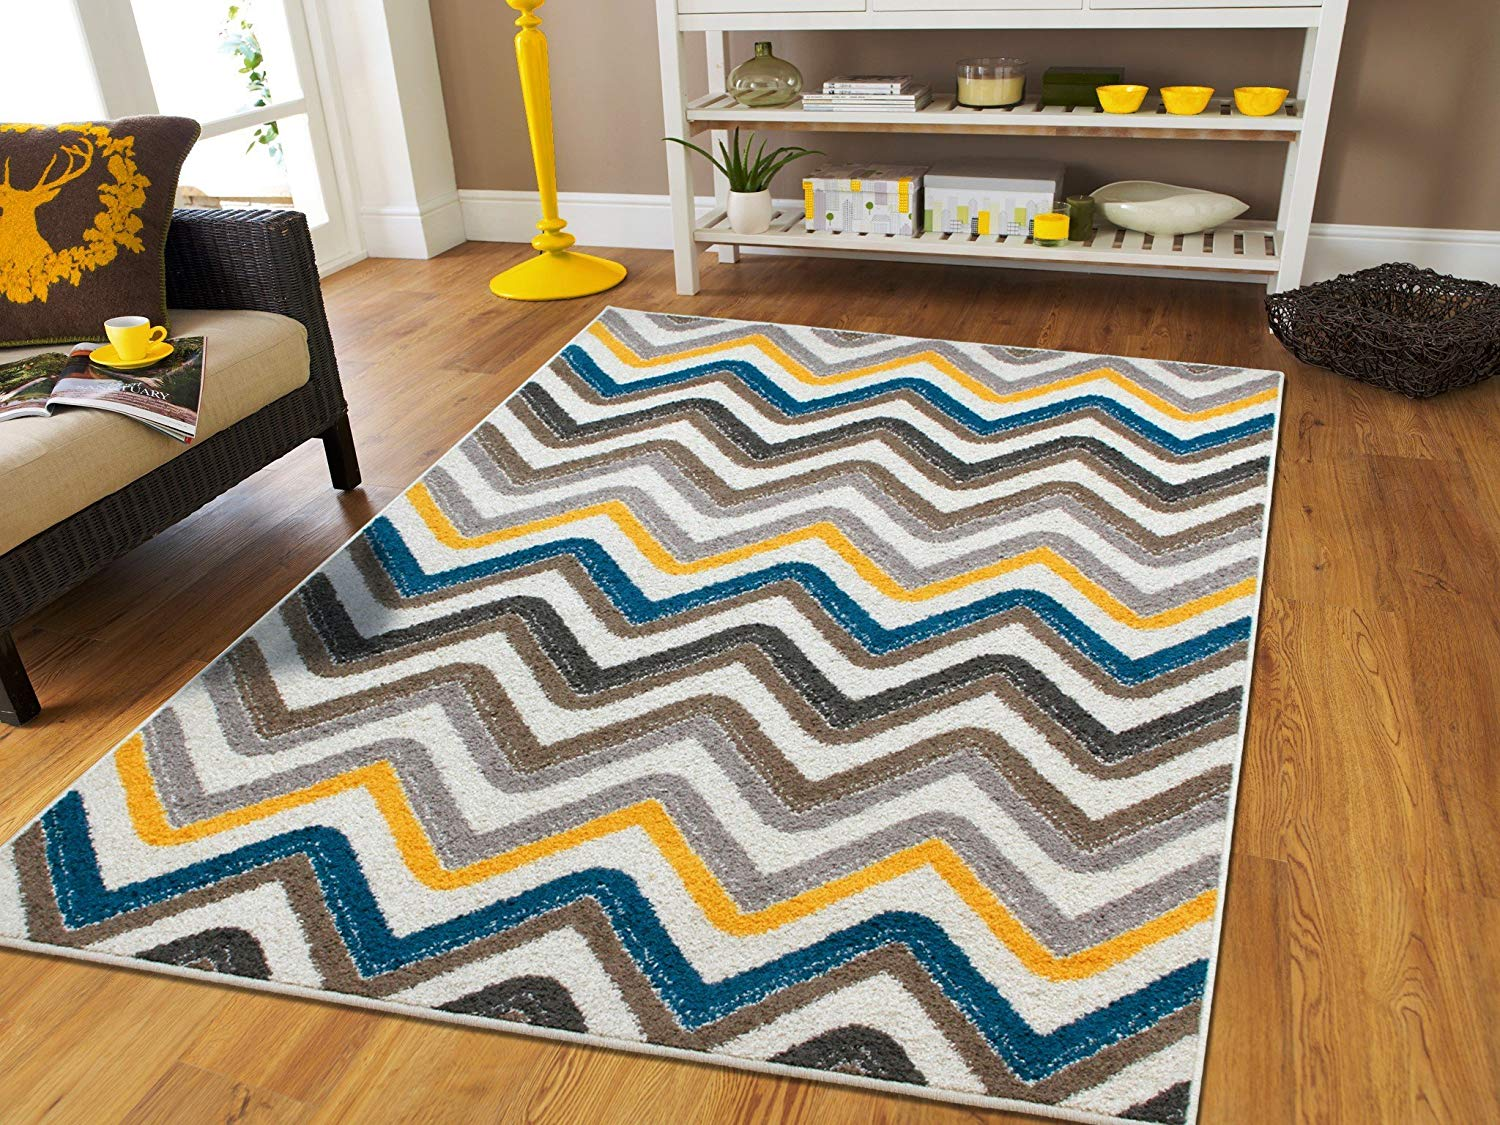 best rugs amazon.com: new fashion zigzag style large area rugs 8x11 clearance under  100 KSAZWMR